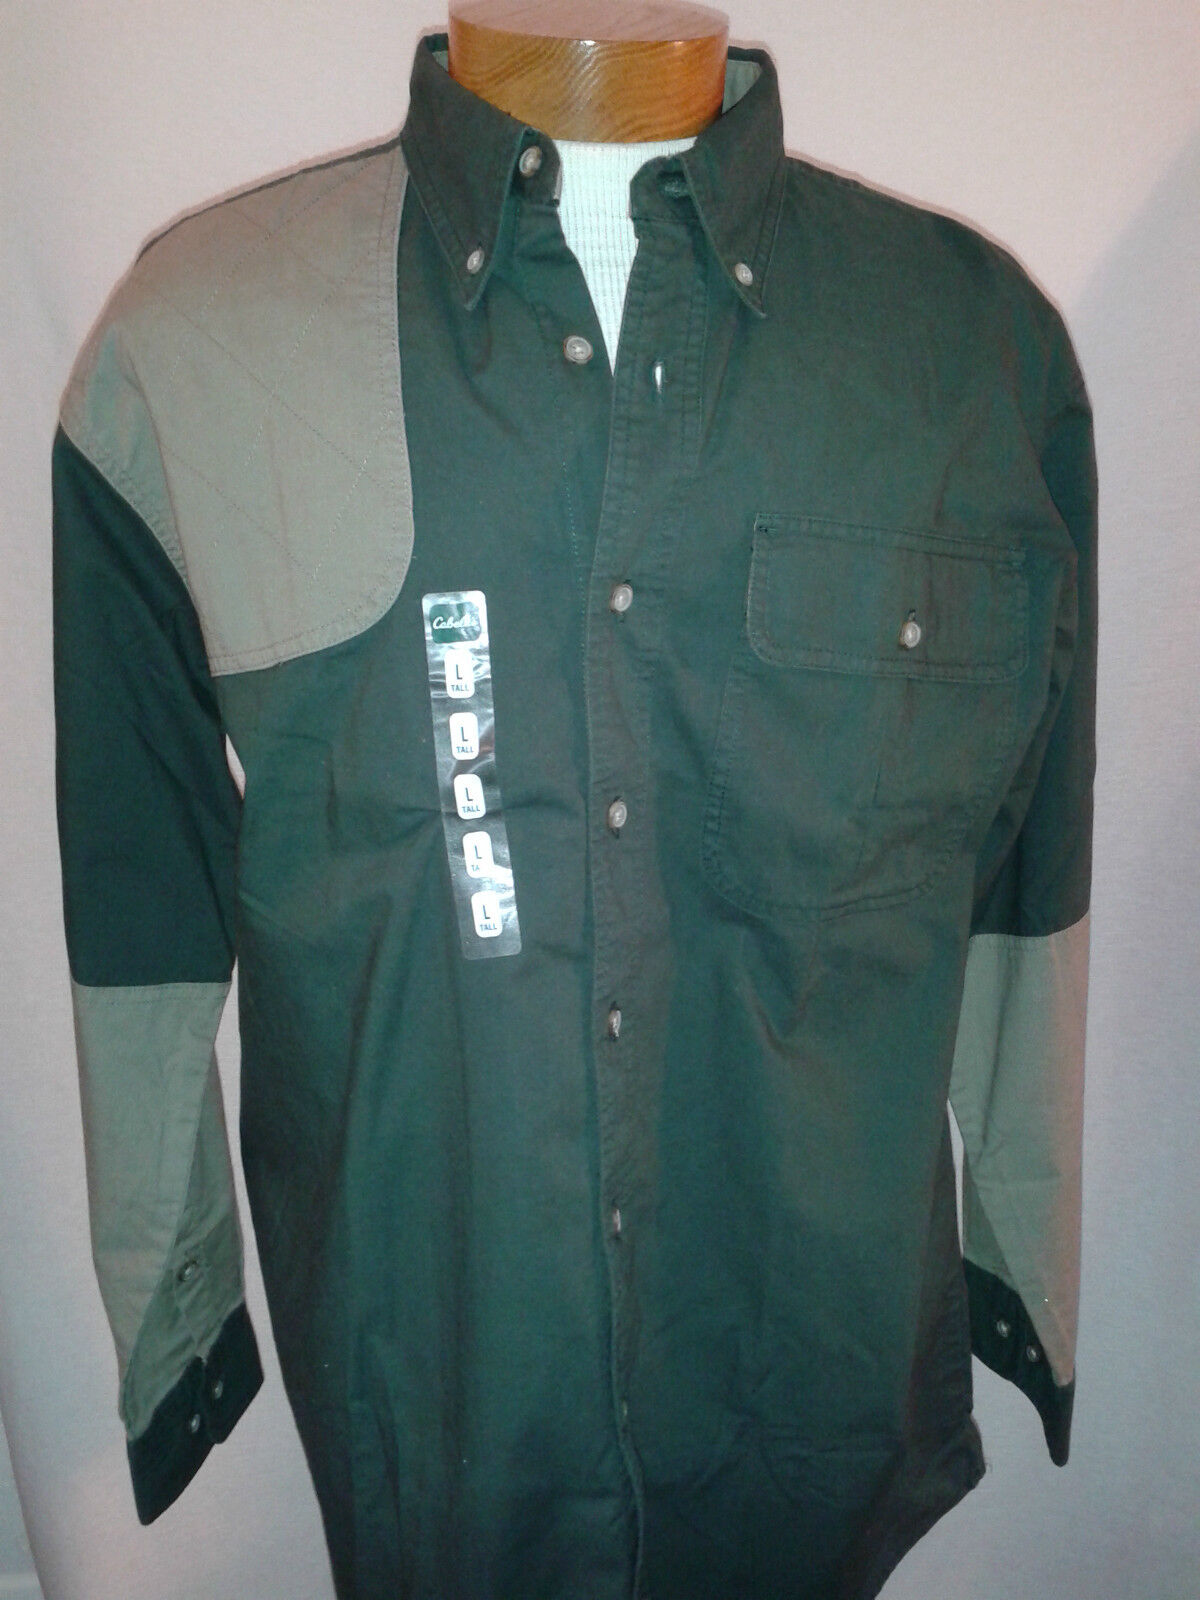 NWT Cabelas Outdoor Gear Men's Cotton Green Hunting Button Down Shirt  L TALL